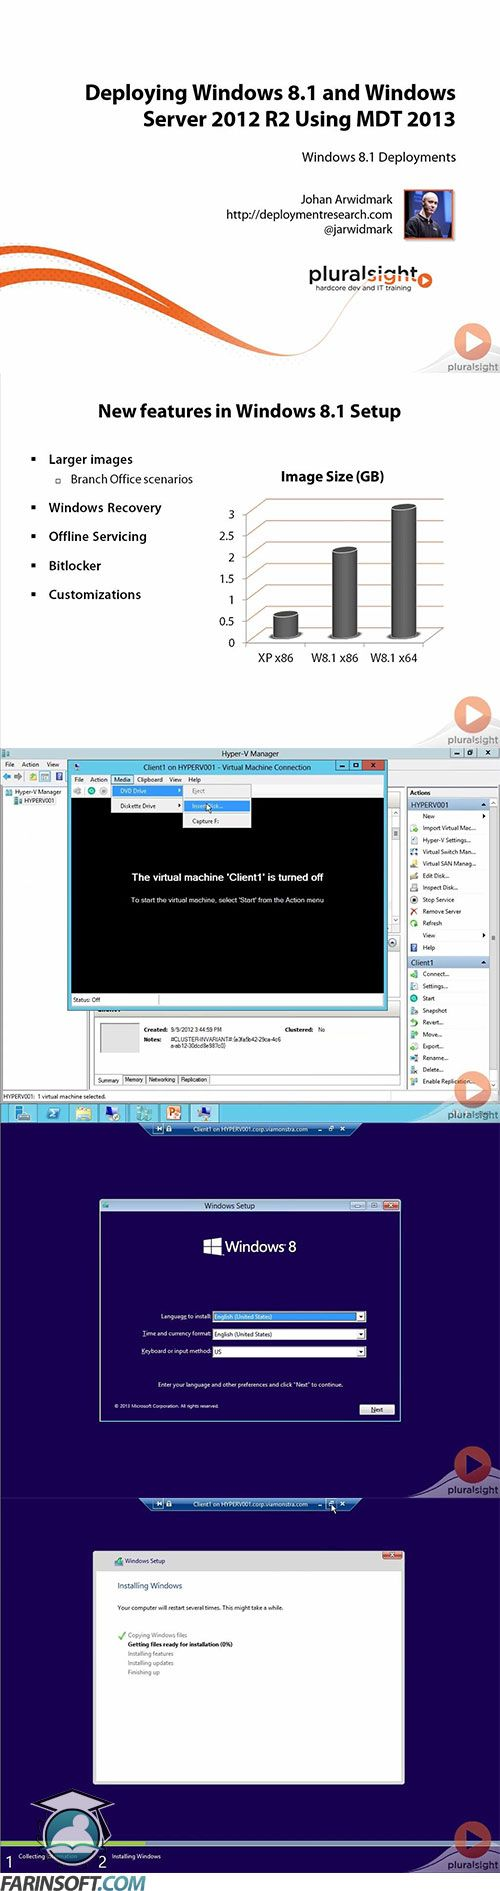 Deploying-Windows-8.1-and-Windows-Server-2012-R2-using-MDT-2013